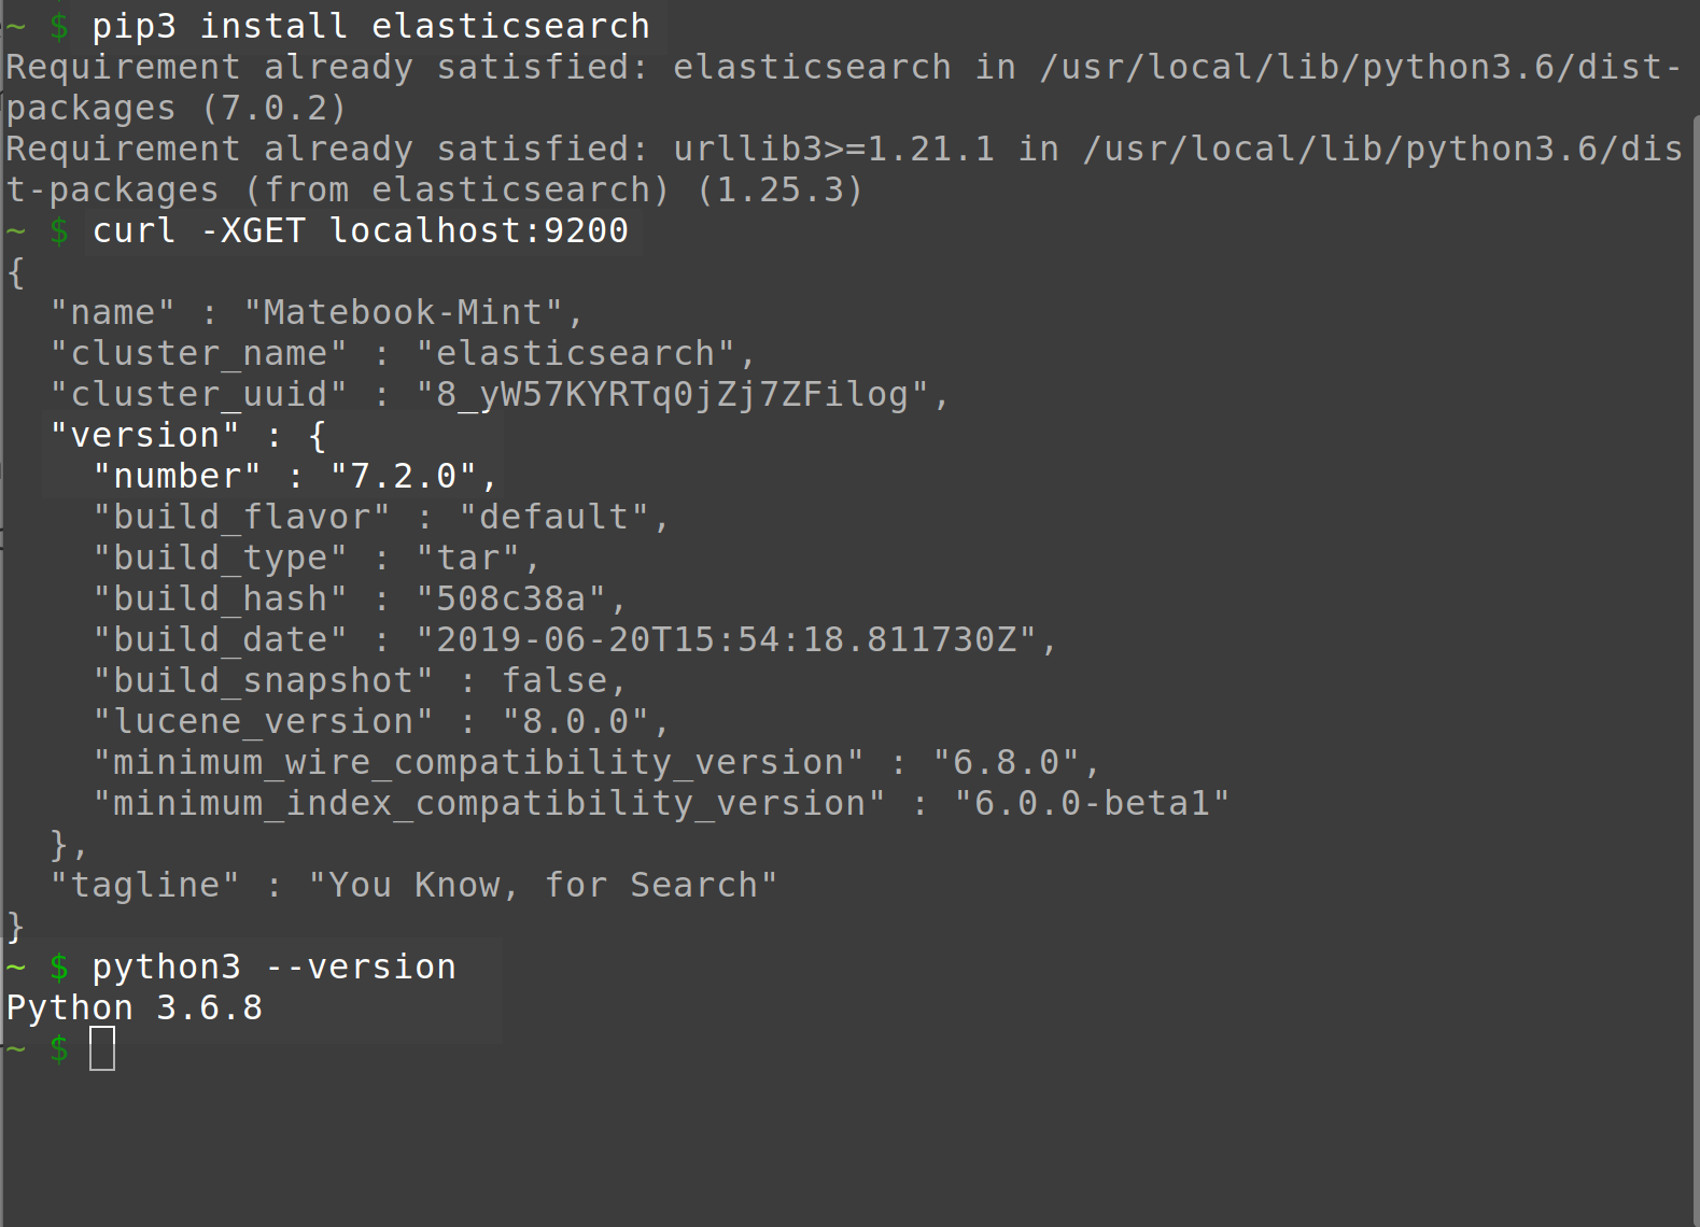 Screenshot of the PIP3 installer for Python 3 and Elasticsearch in a UNIX terminal